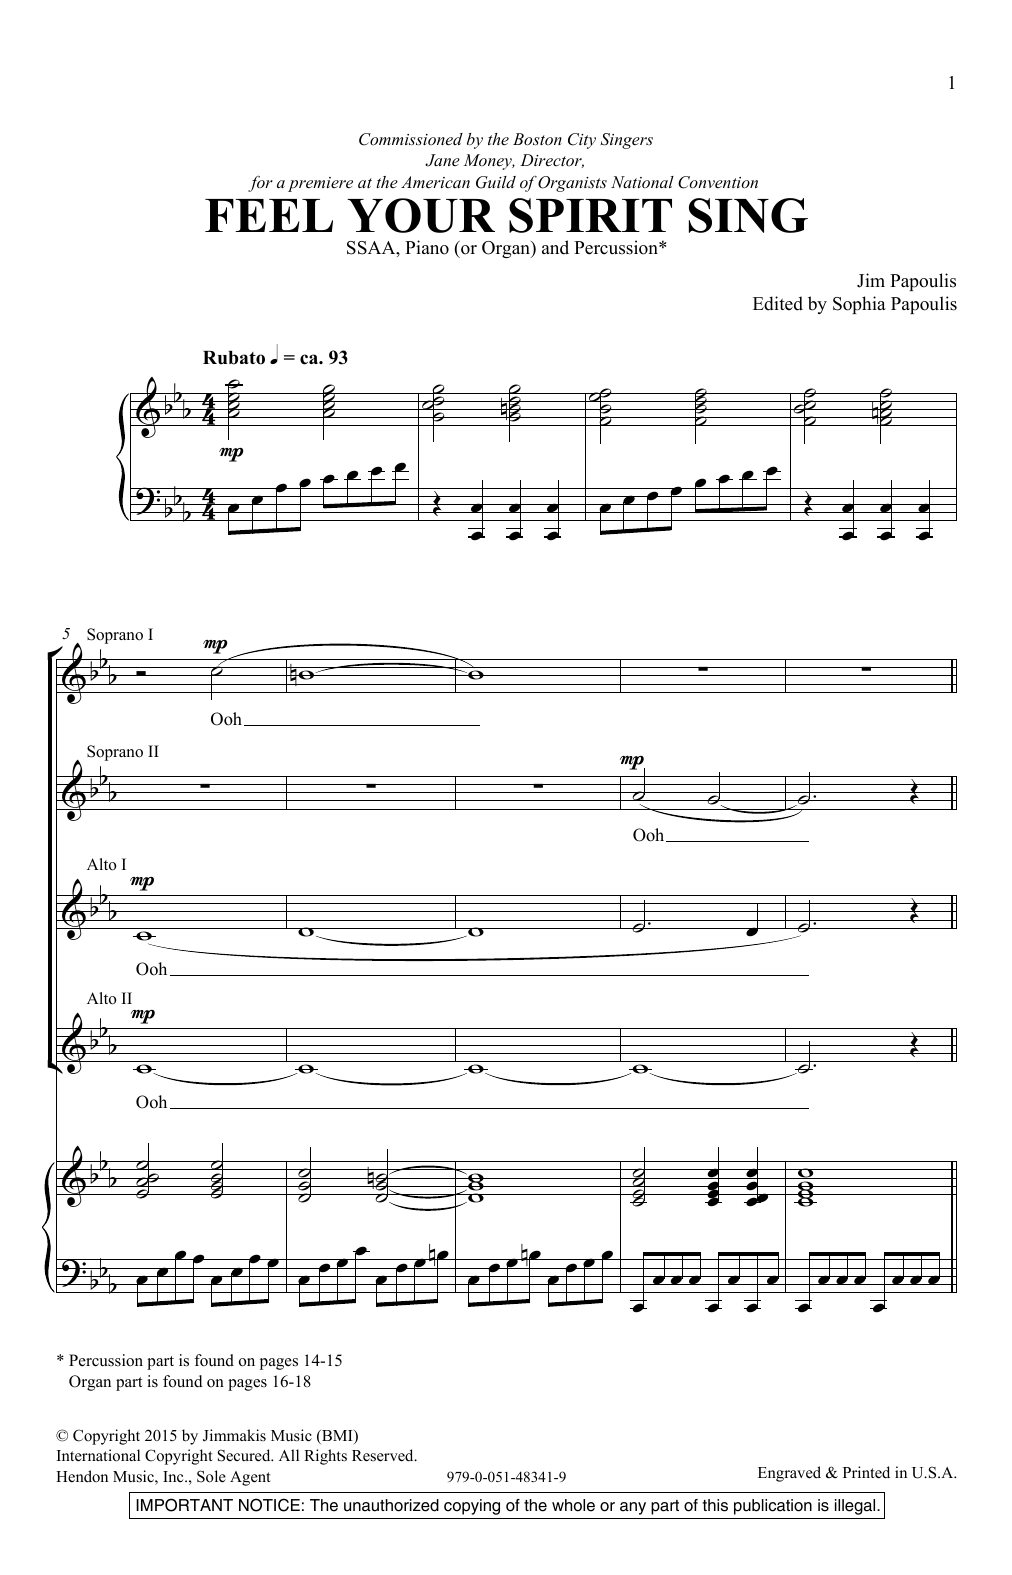 Sheet Music Digital Files To Print - Licensed Jim Papoulis Digital